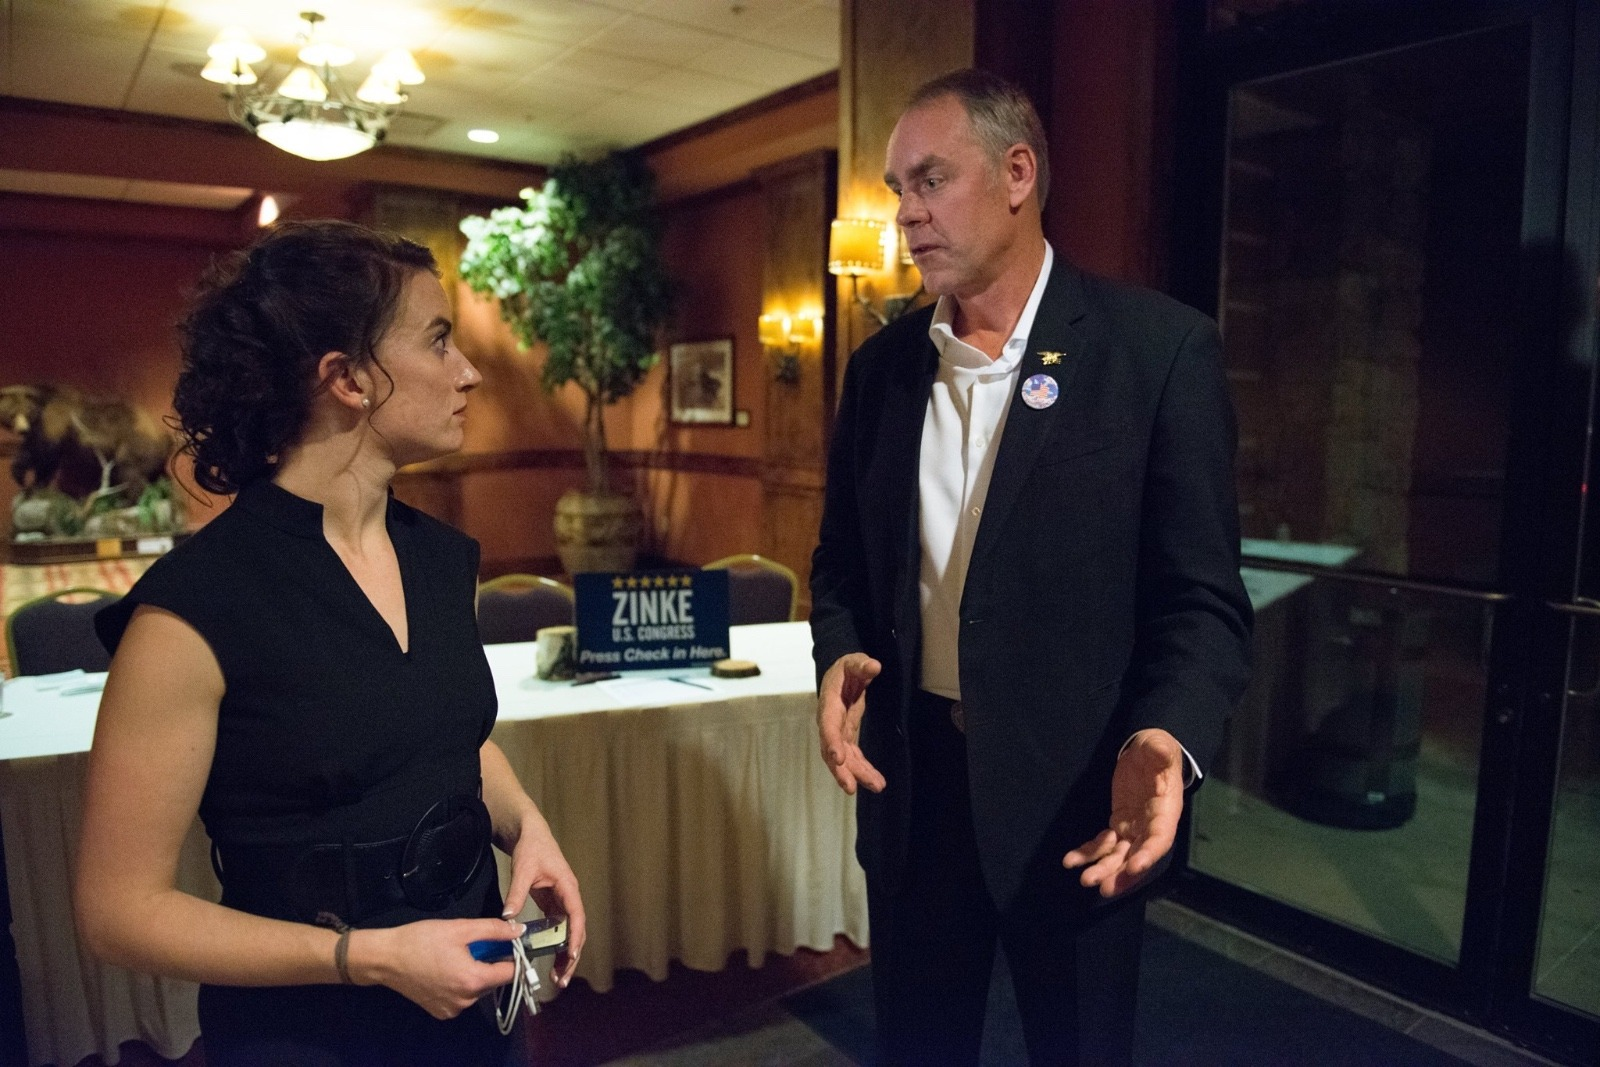 Shelby Demars, partner at The Montana Group, circulated this photo of her and Ryan Zinke on social media